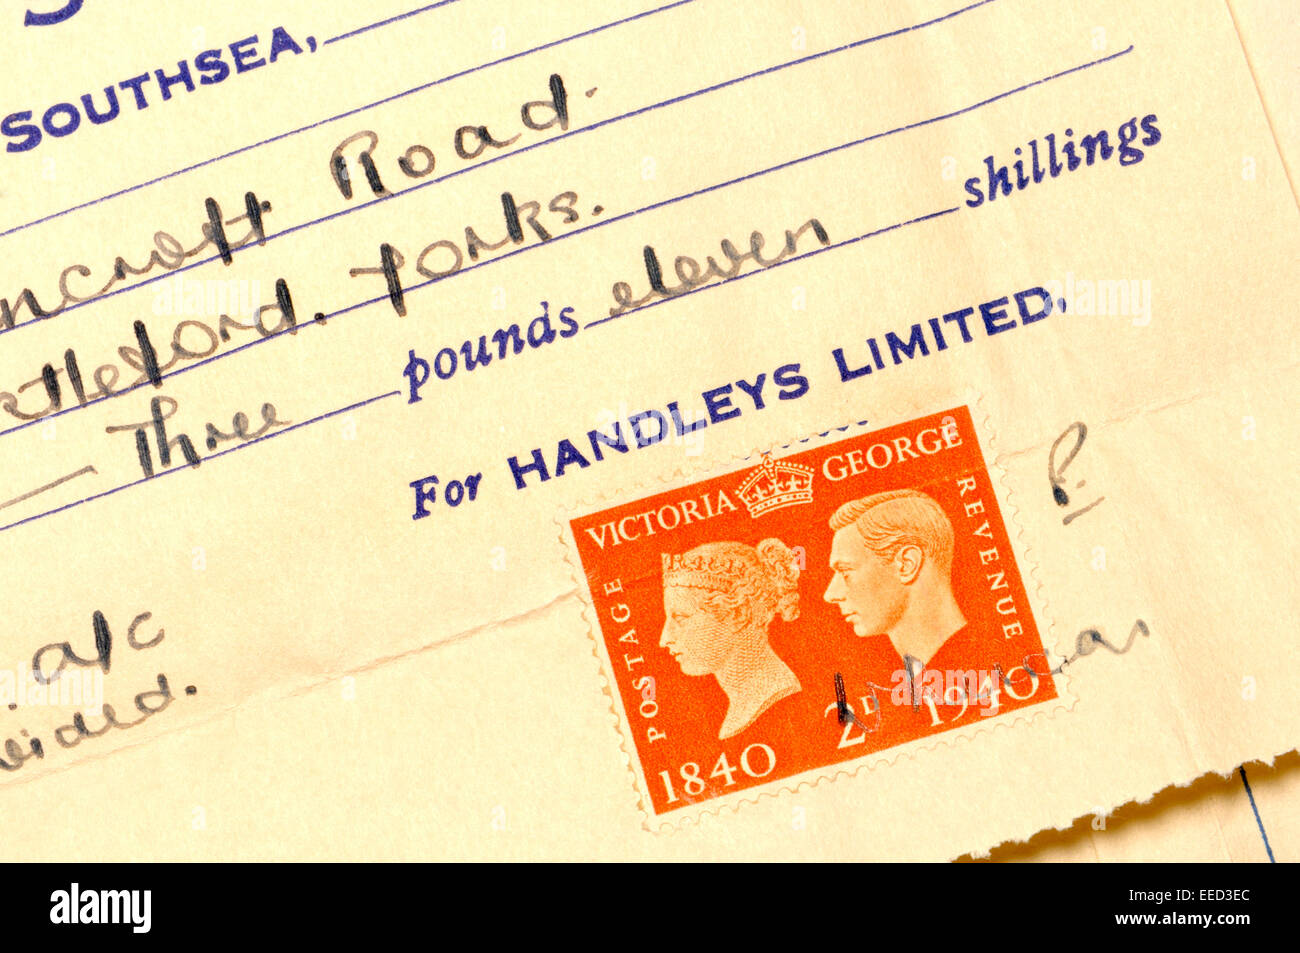 Postage stamps used to legally validate a receipt - George VI, 1941 Stock Photo